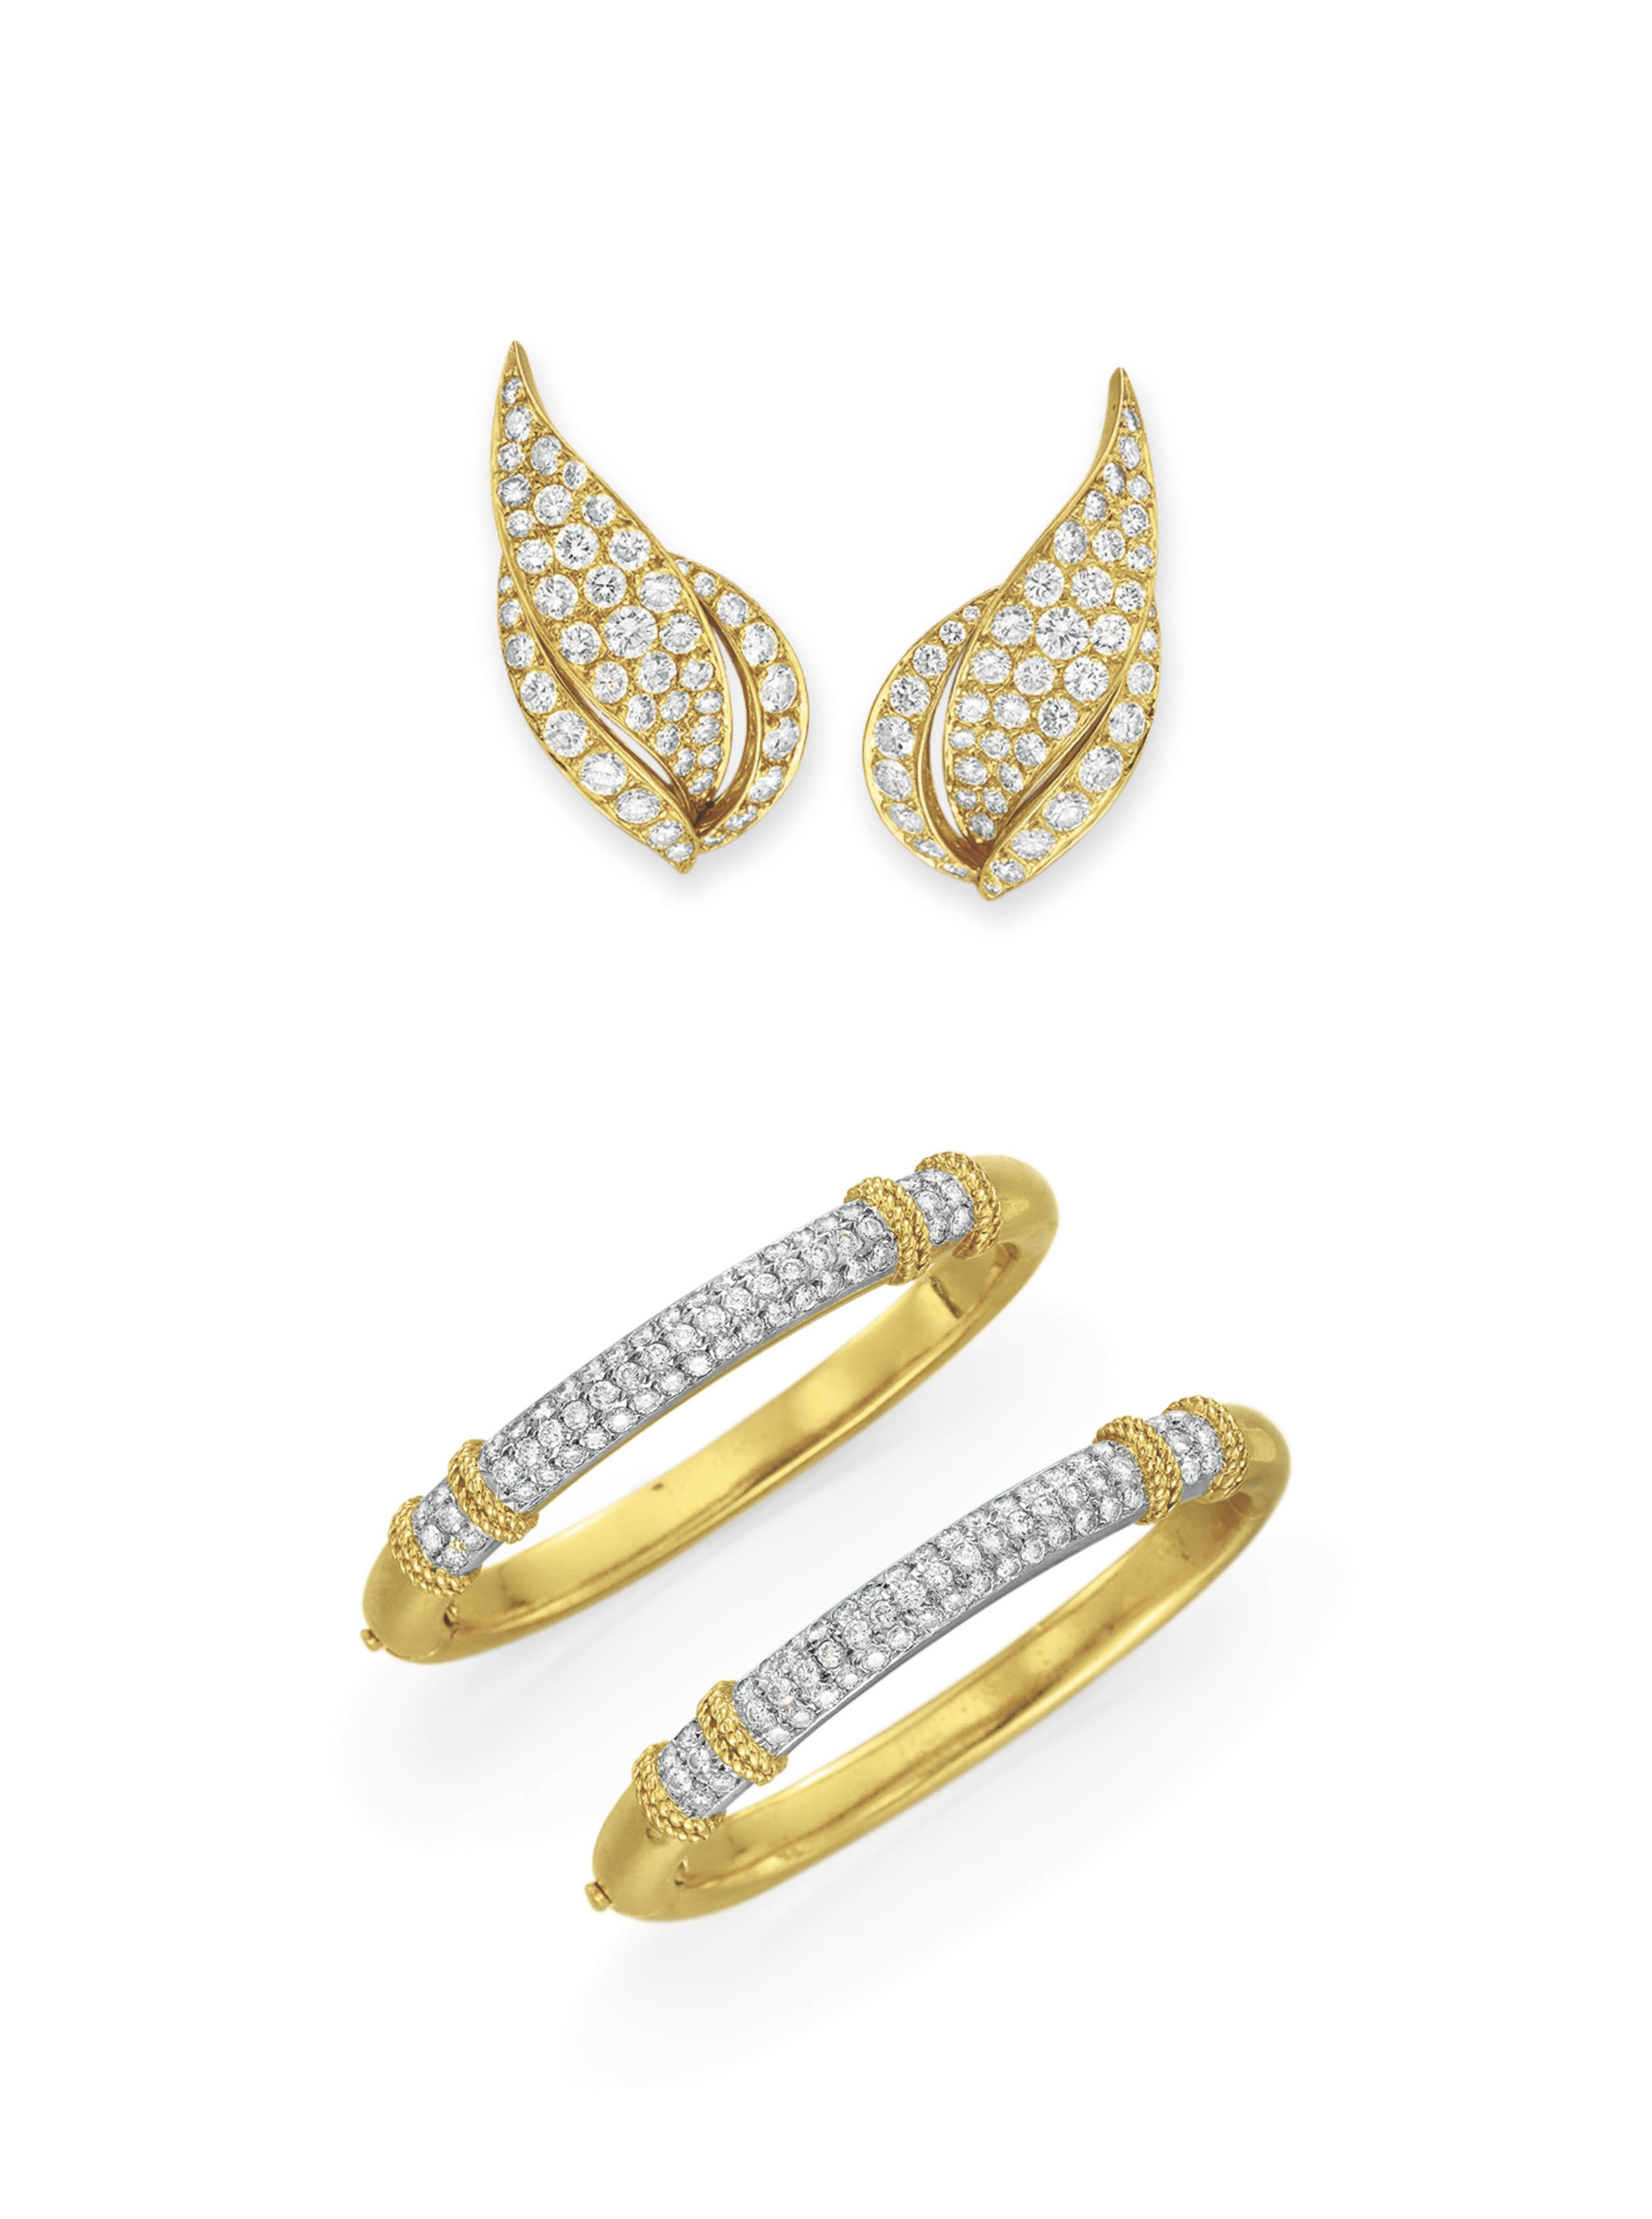 A GROUP OF DIAMOND AND GOLD JEWELRY, BY FRED